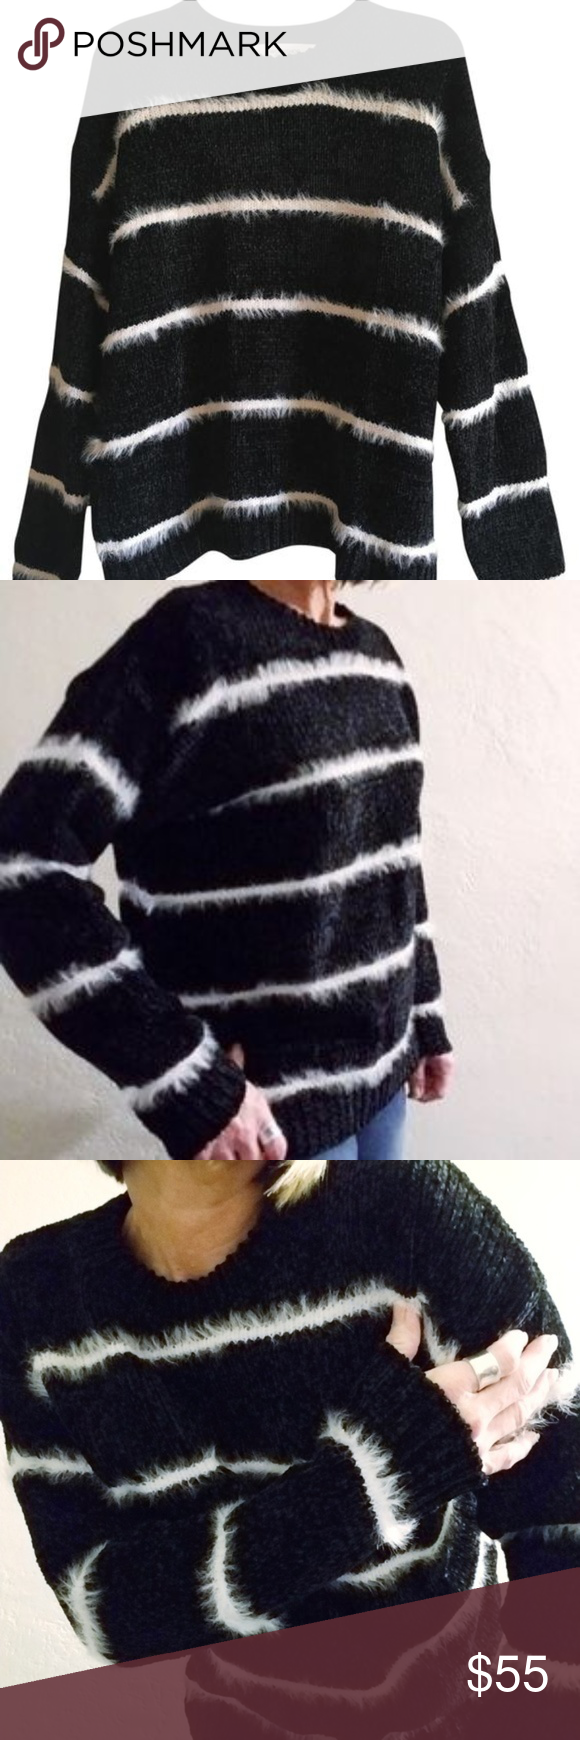 Workshop Republic XL Chunky Chenille Sweater Black Workshop Republic Chunky Chenille Stripe Knit Sweater - pull over, drop shoulder, chenille with fuzzy eyelash stripe, plush, soft and cozy Size: XL Color: Black with white stripe Content: 77 polyester 17 nylon 11 acrylic   Measurements Approx: 19.25 pit to pit x 32.5 length Condition: EUC no stains or flaws  All Offers and Bundling Welcome Tags: black Boho Fall Winter Autumn  work casual Friday warm cozy soft city outfits fuzzy trendy fashiona #winteroutfitsforwork